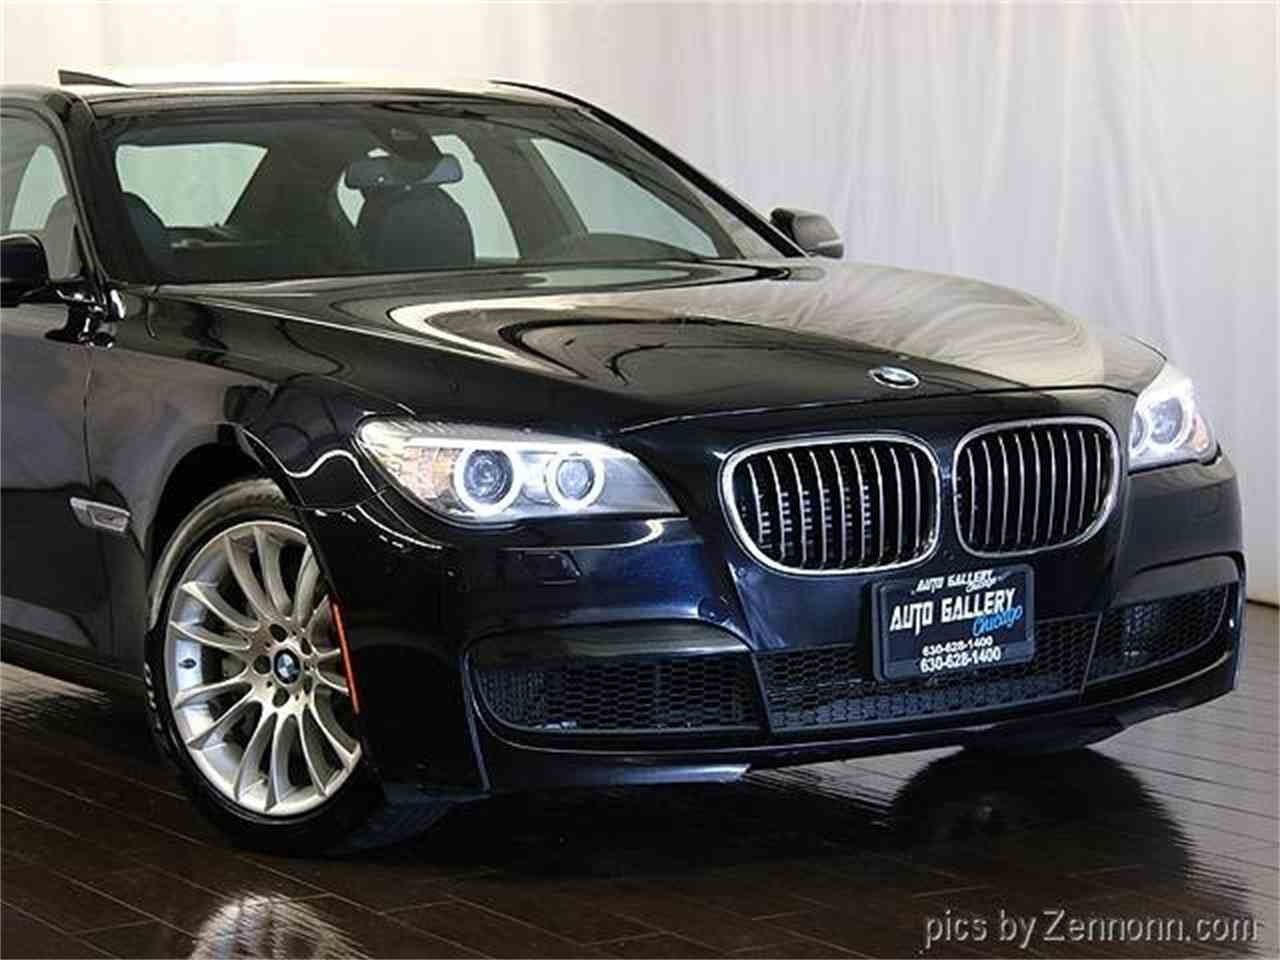 specs sport call sale watch m review youtube pkgs executive bmw for price new tampa in bay w